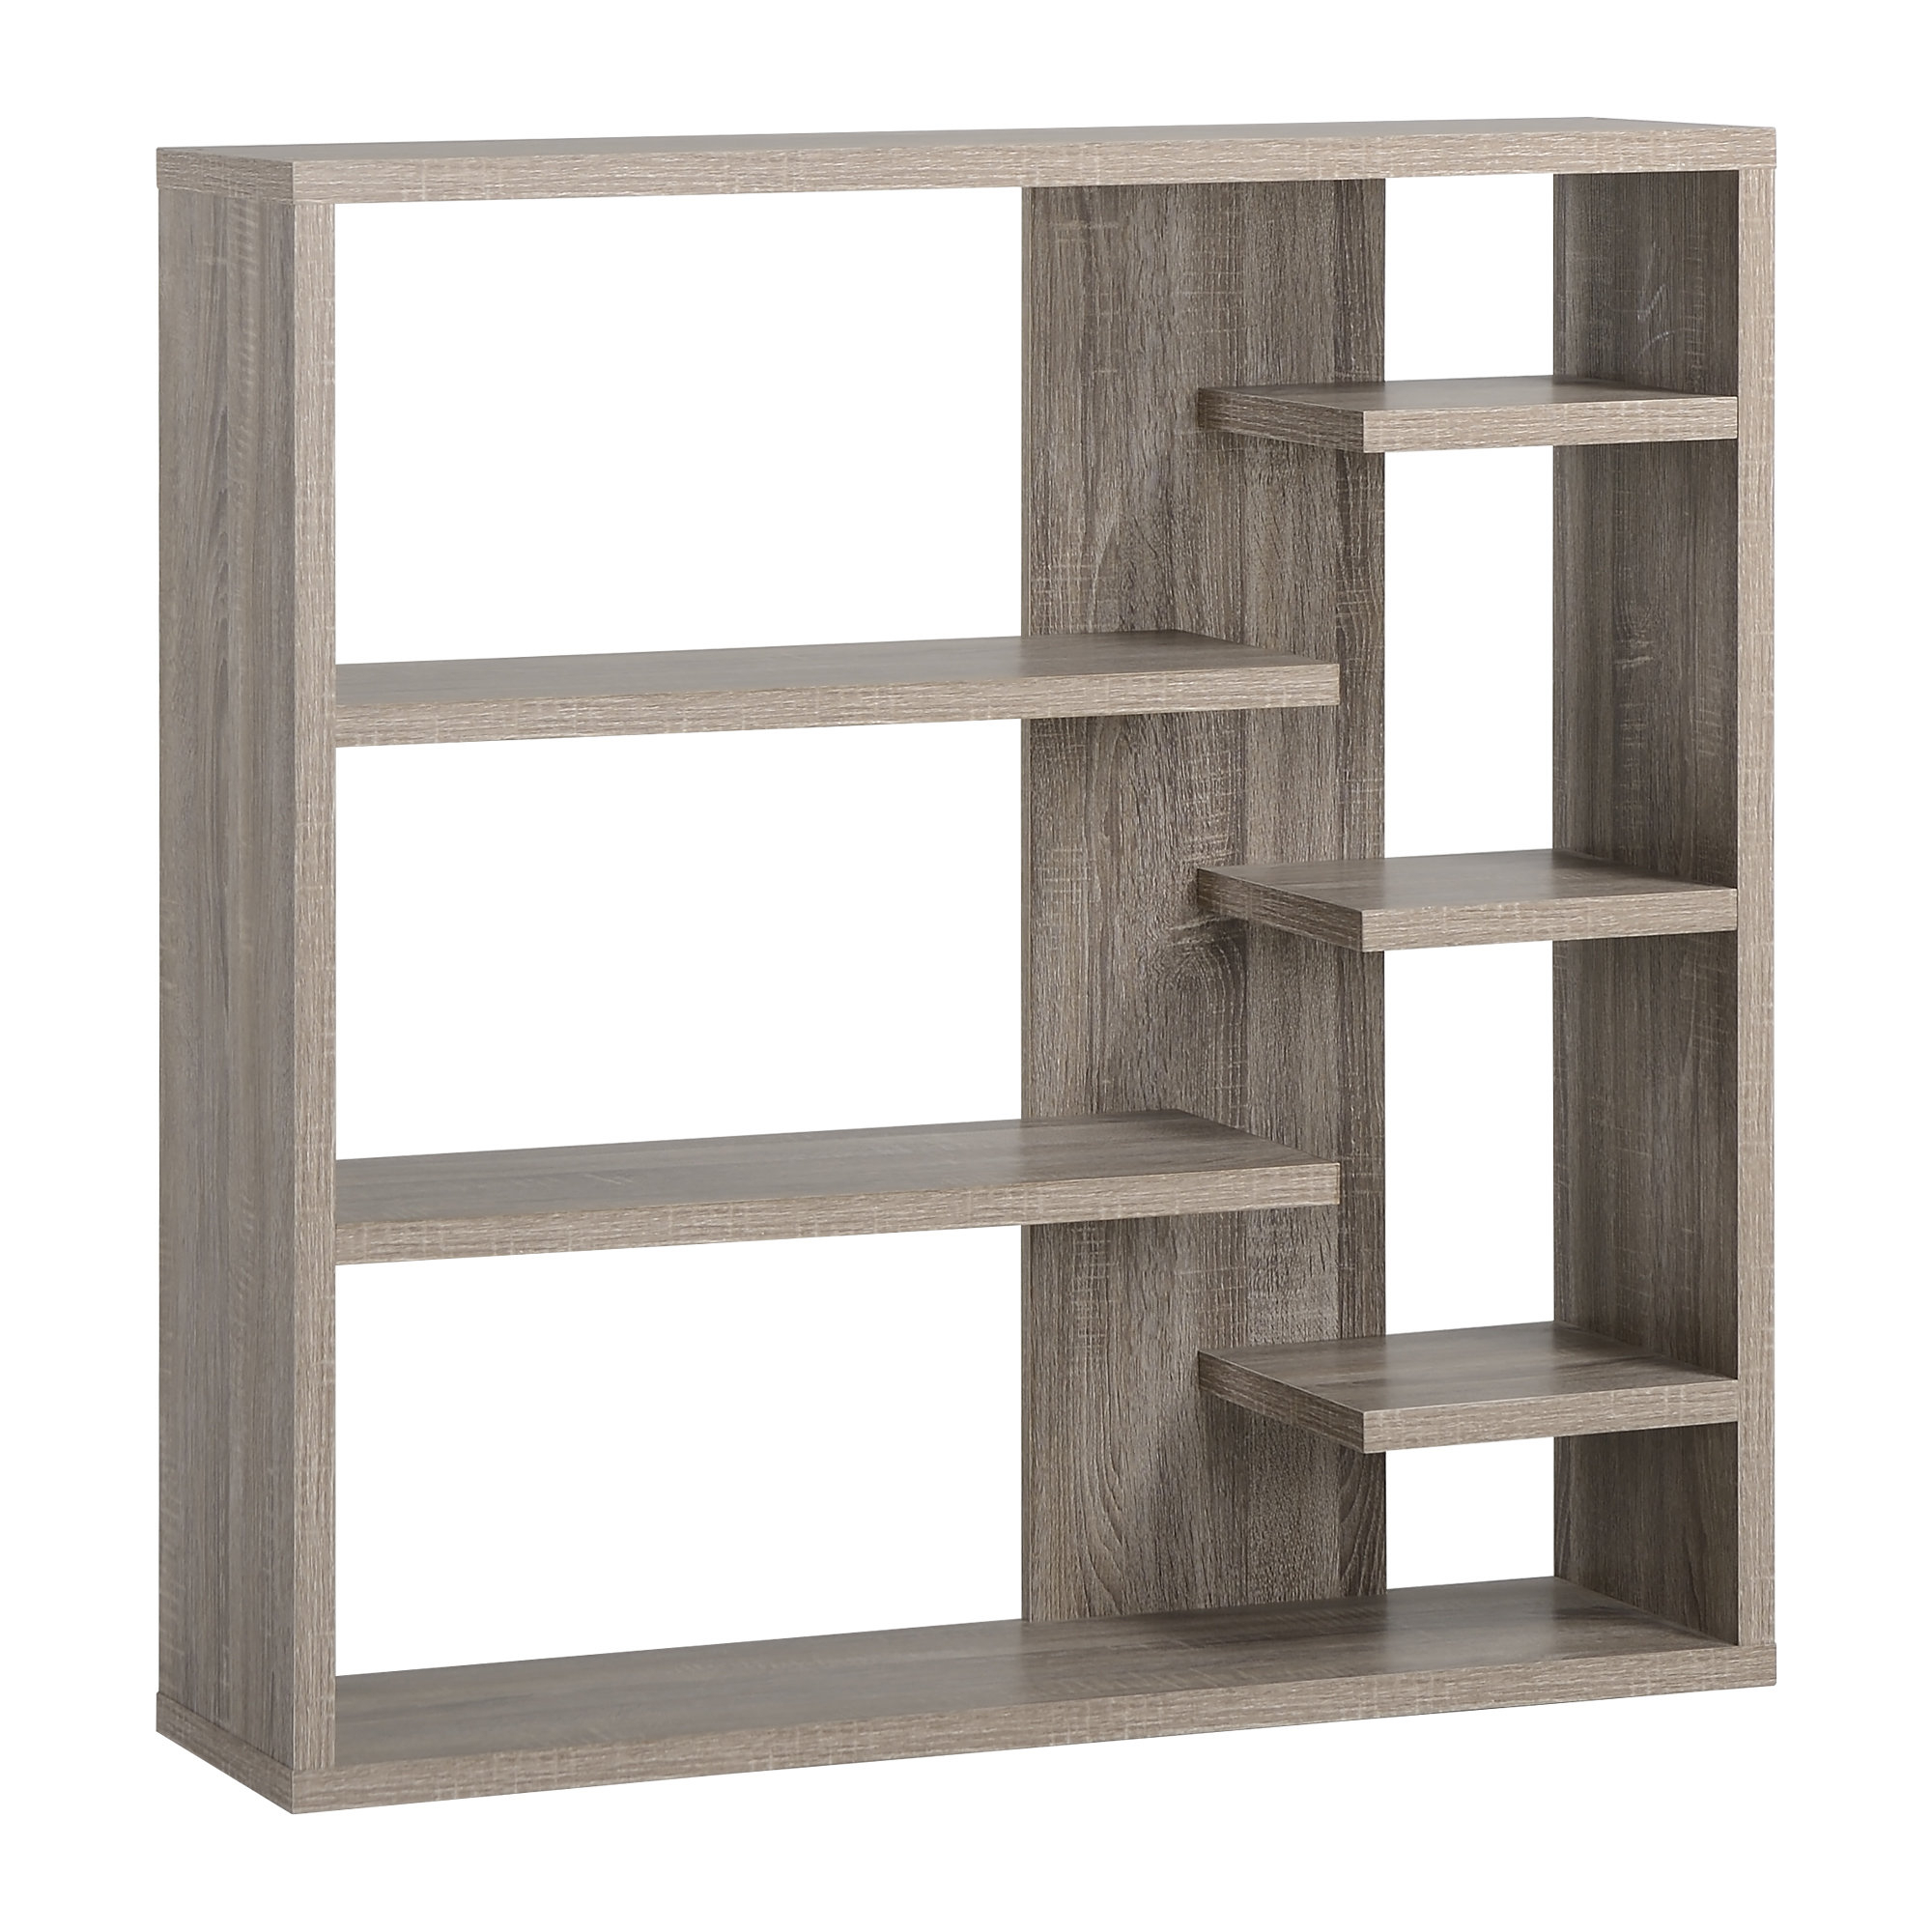 2020 Ignacio Standard Bookcases Within Standard Bookcase (Gallery 18 of 20)